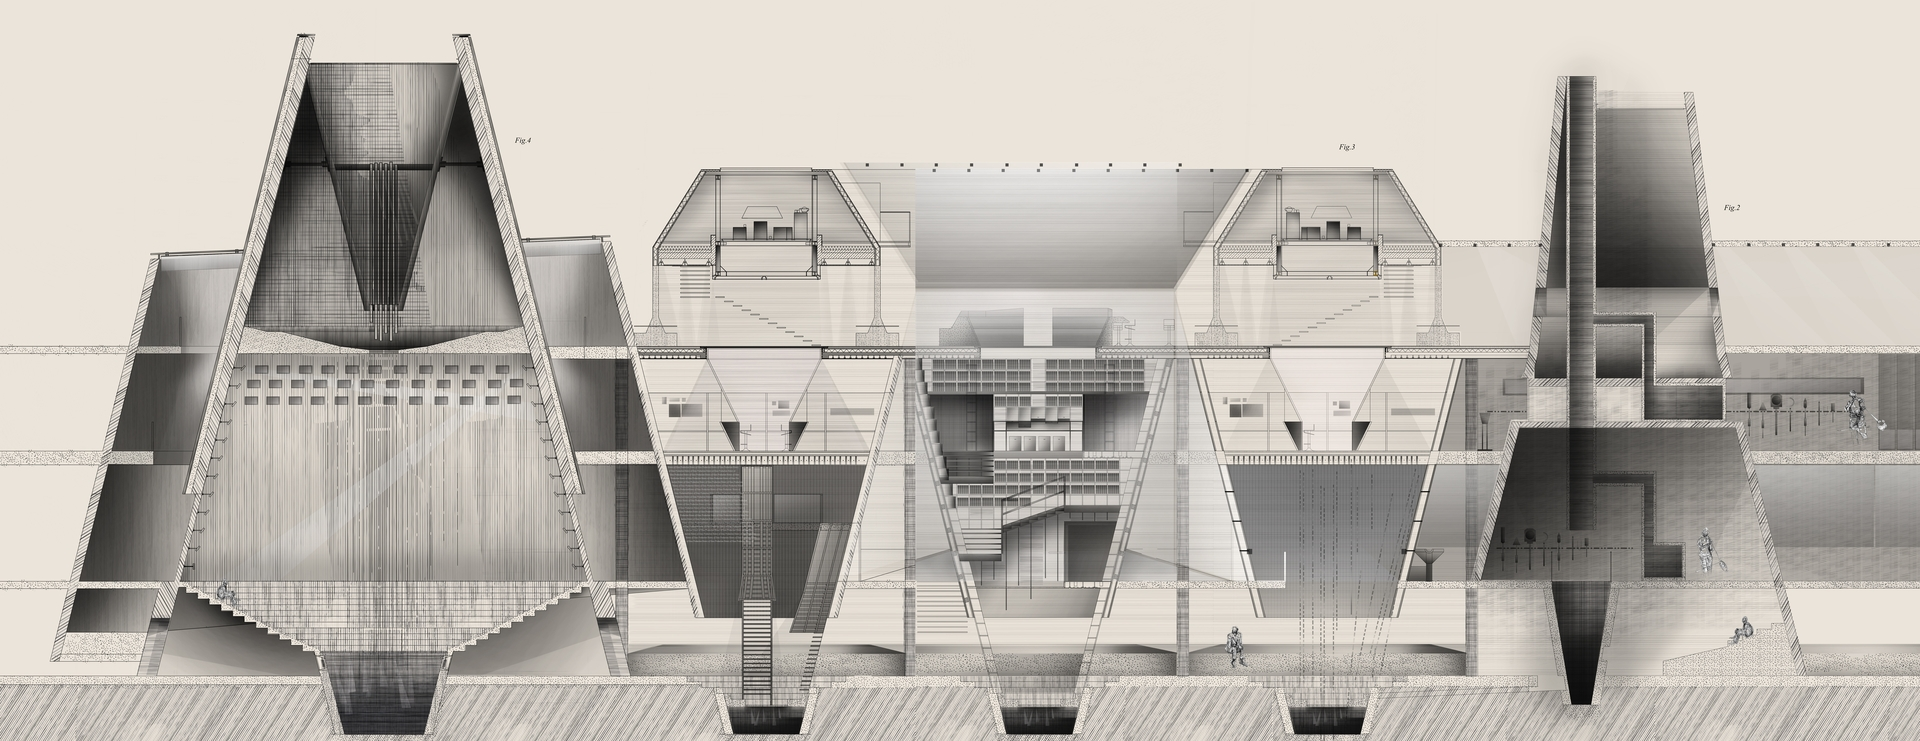 Human nature hku faculty of architecture for Space definition in architecture